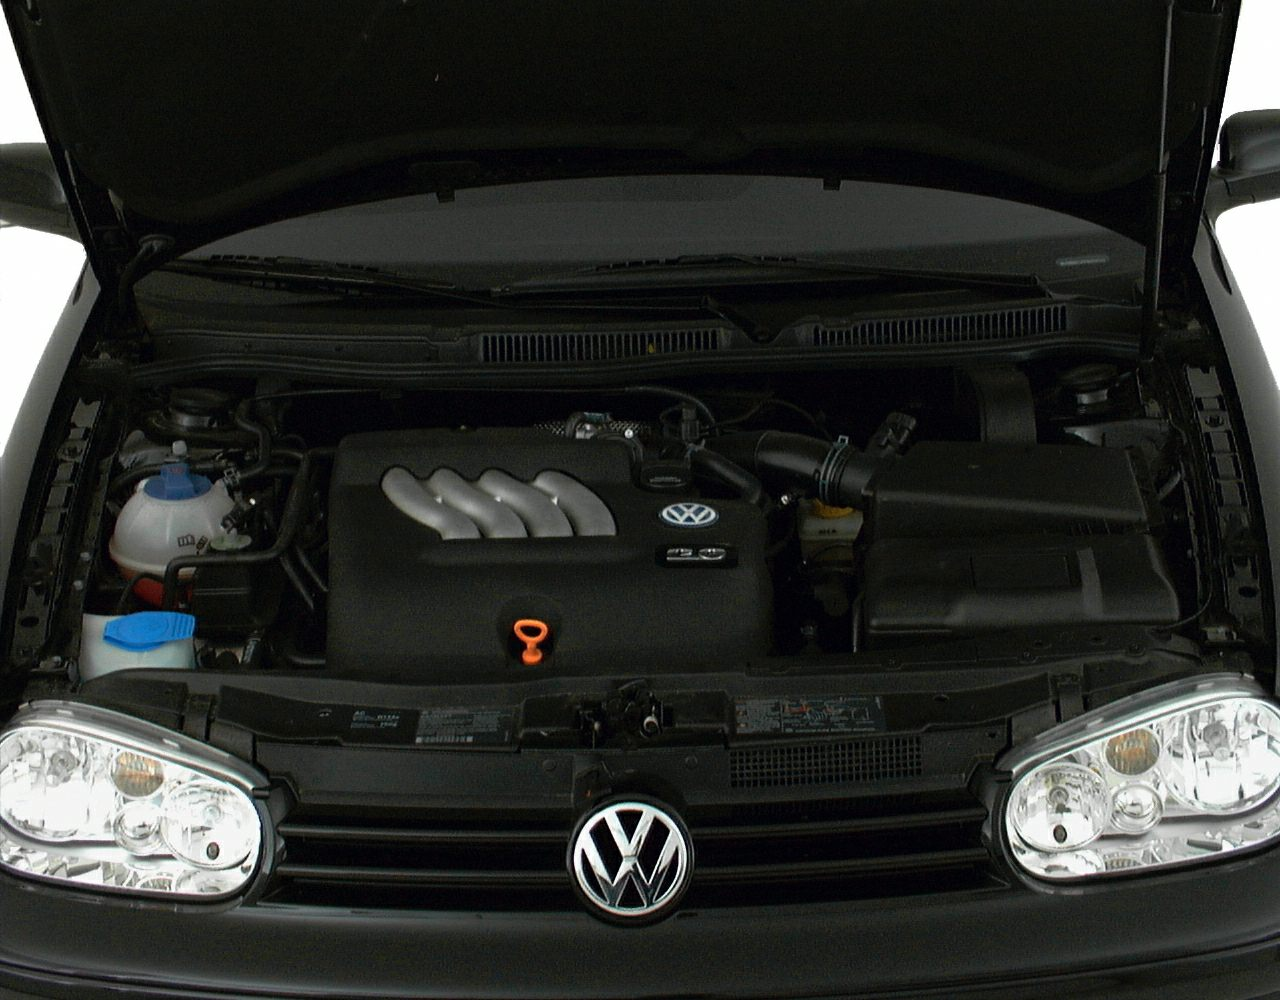 2017 golf sportwagen owners manual